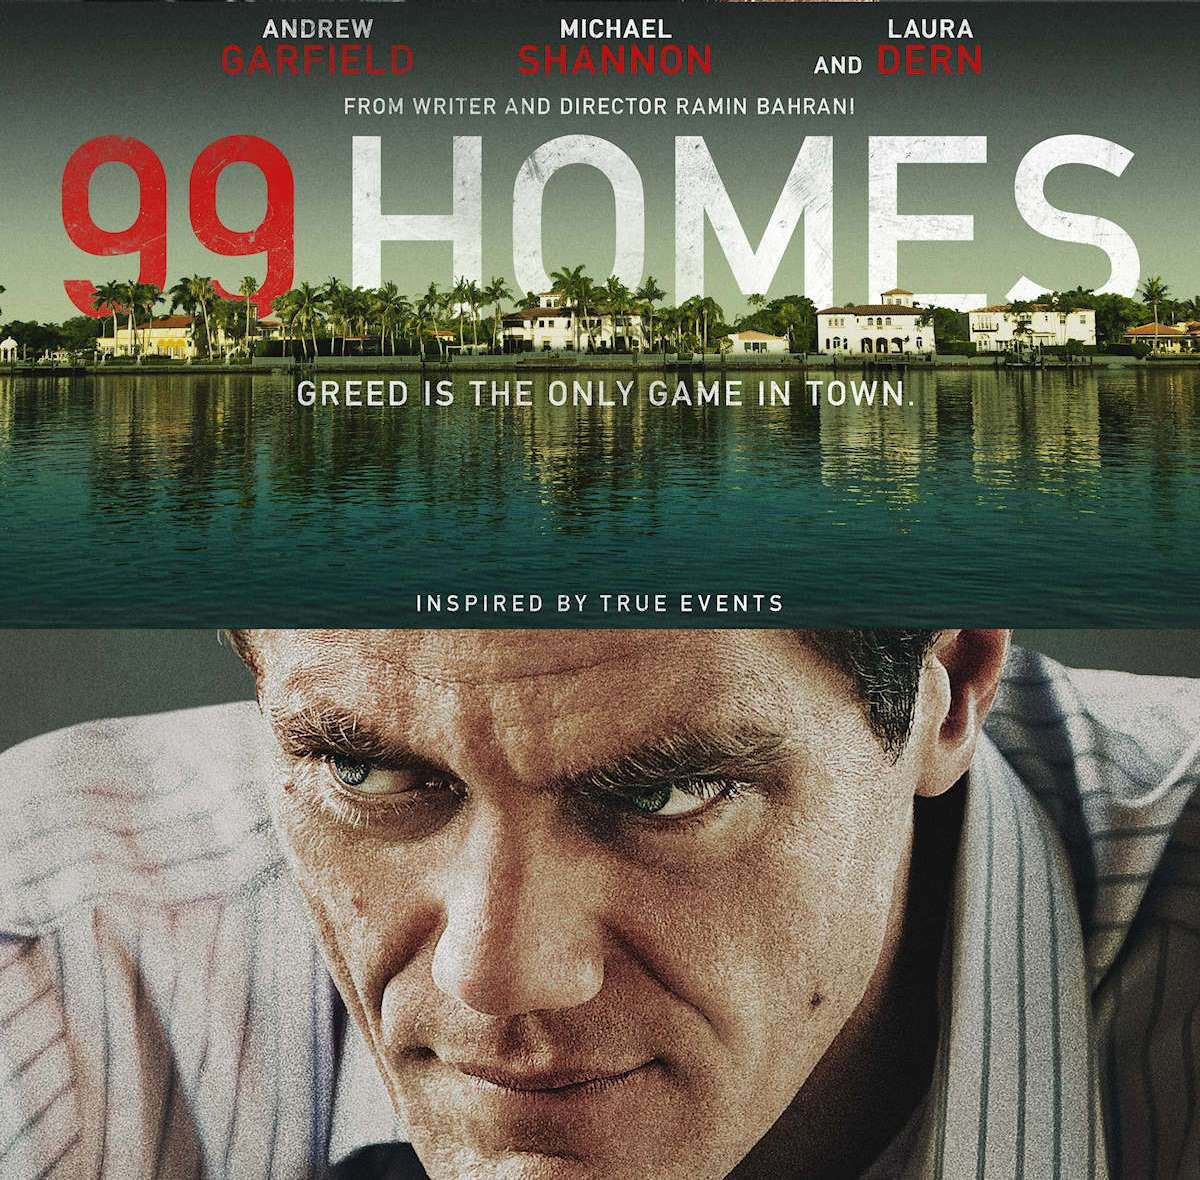 Square 99 homes poster